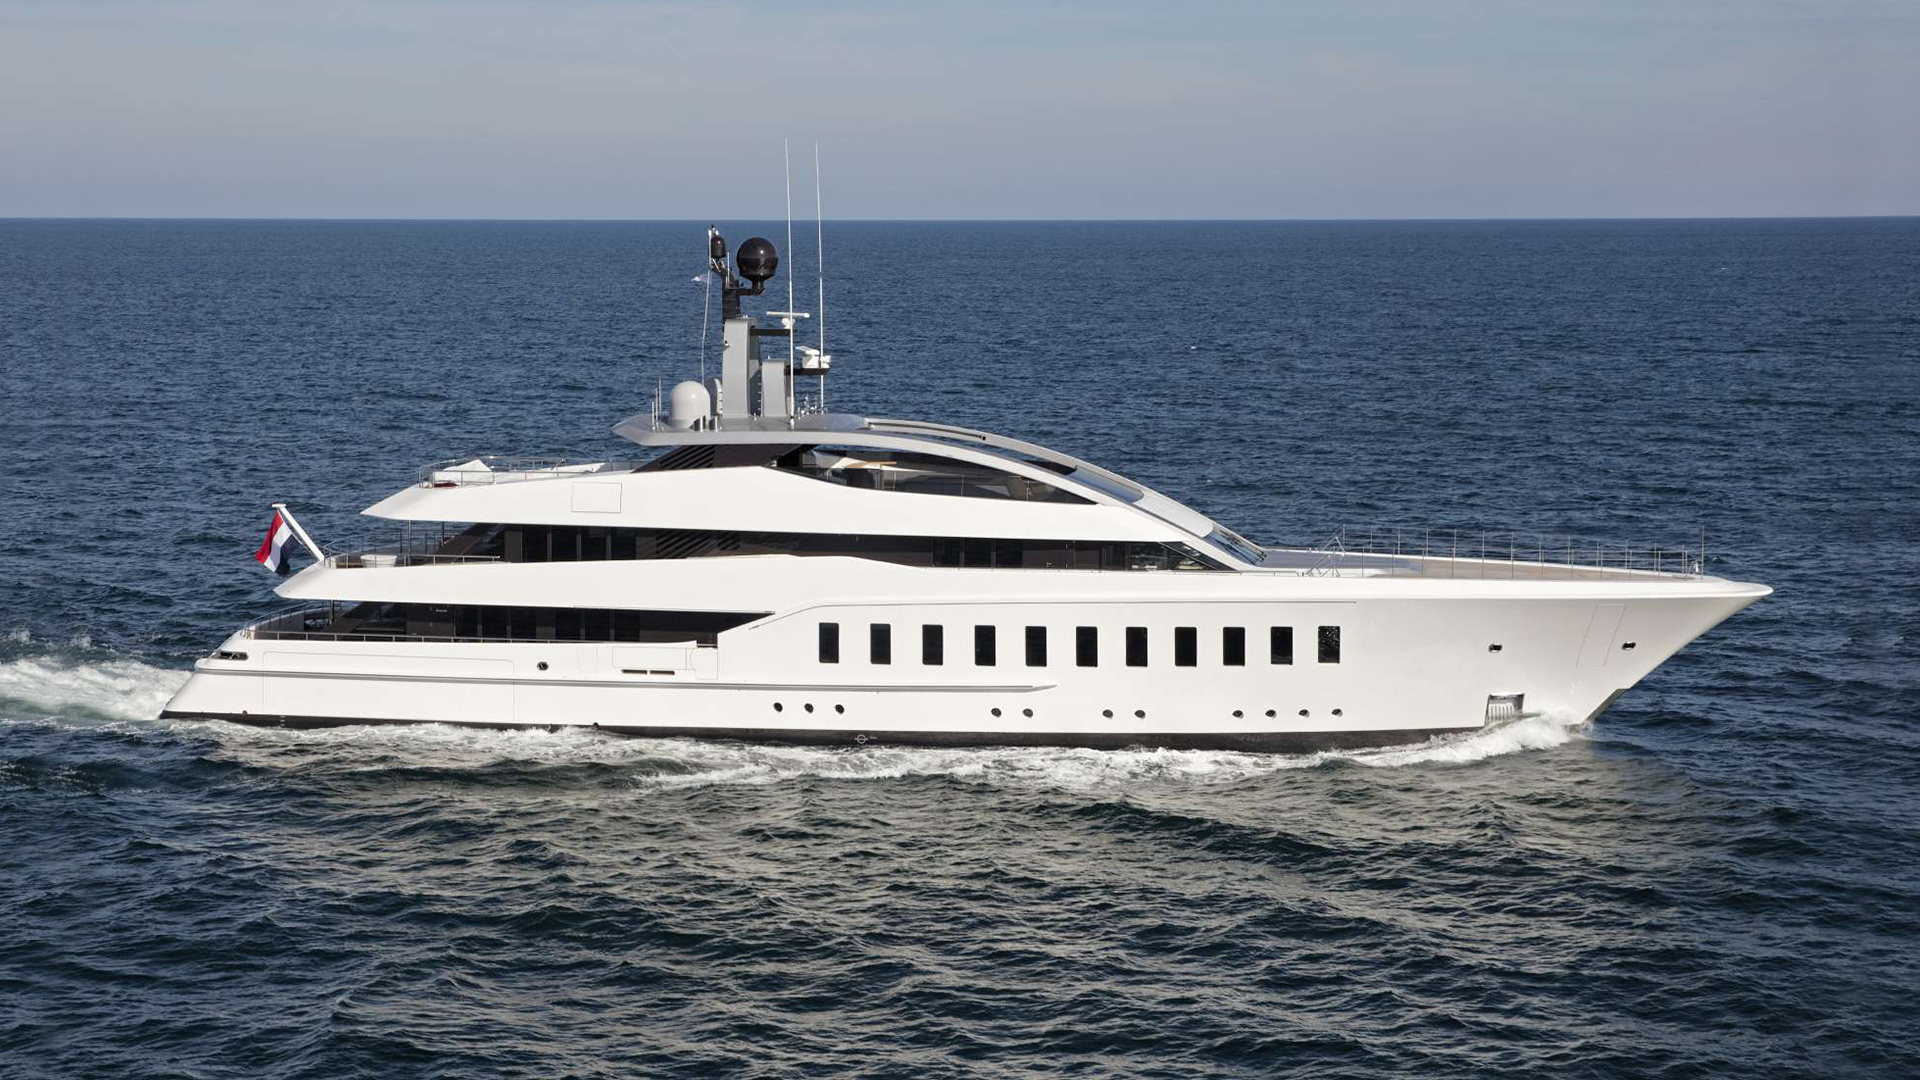 190-foot (58m) Feadship HALO yacht for sale profile